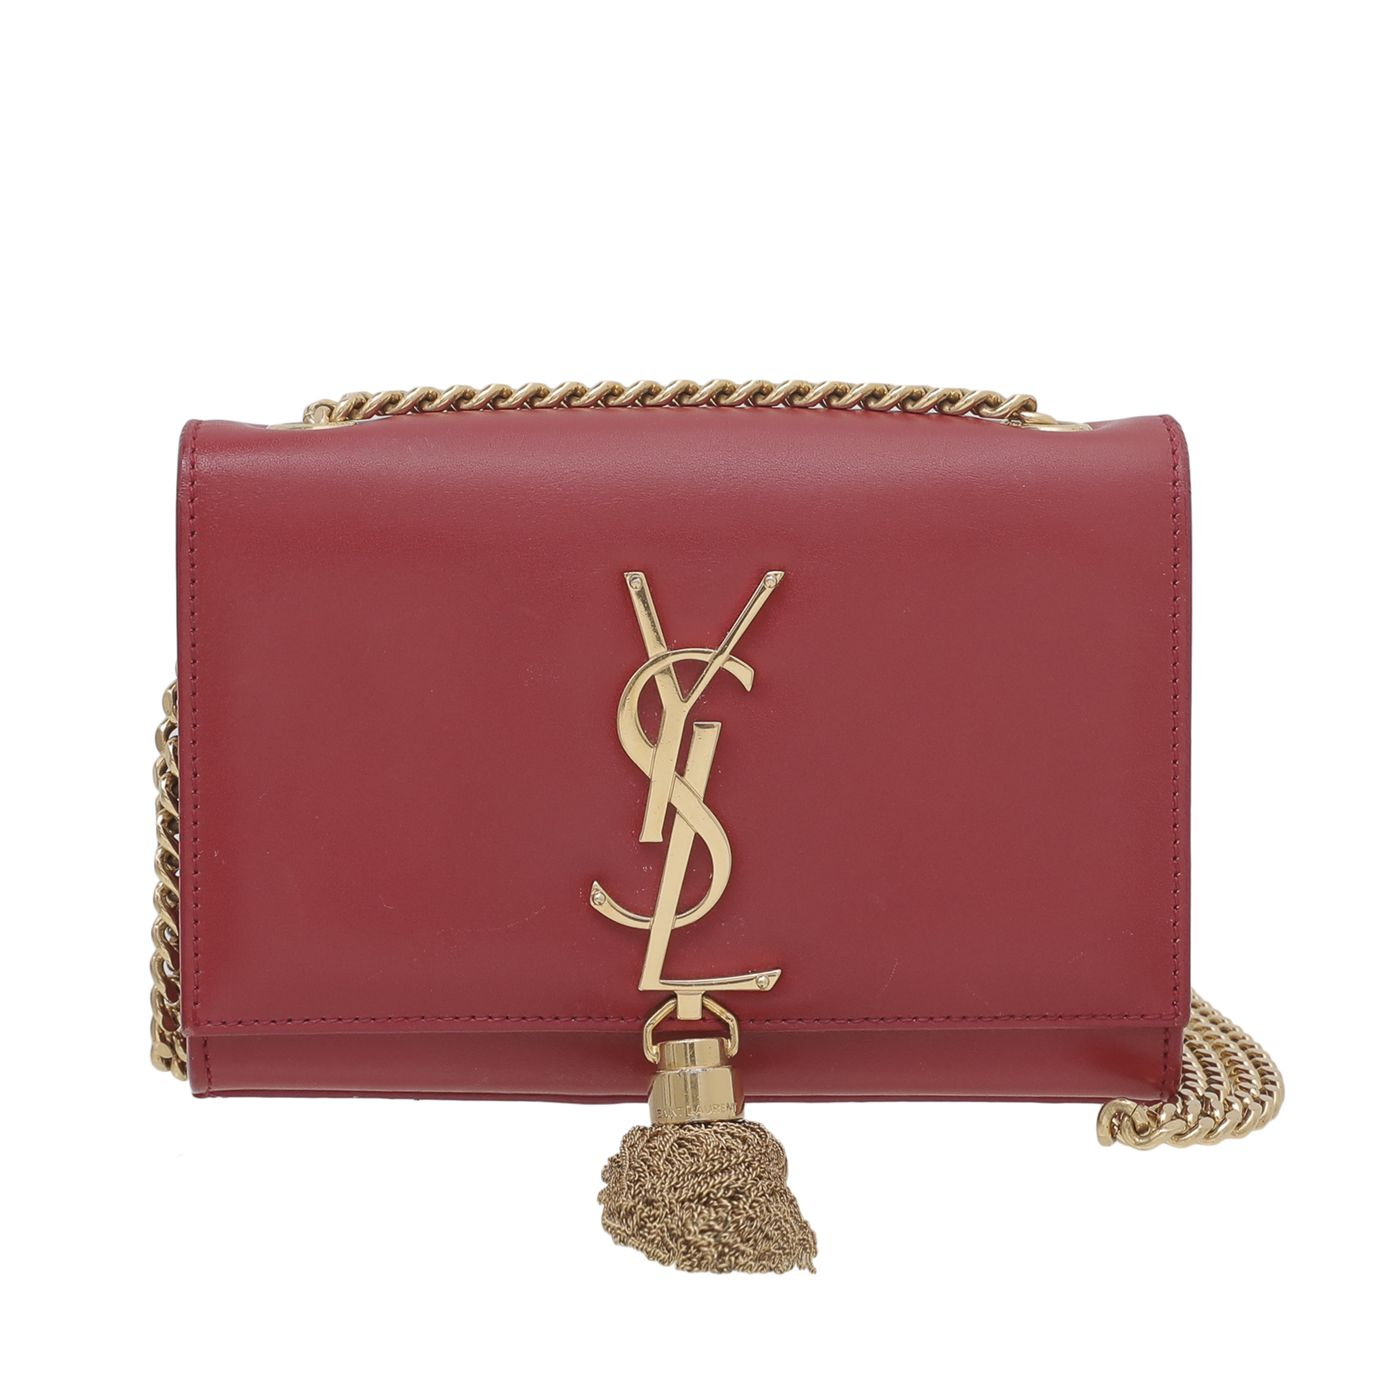 YSL Red Kate Tassel Chain Mini Bag